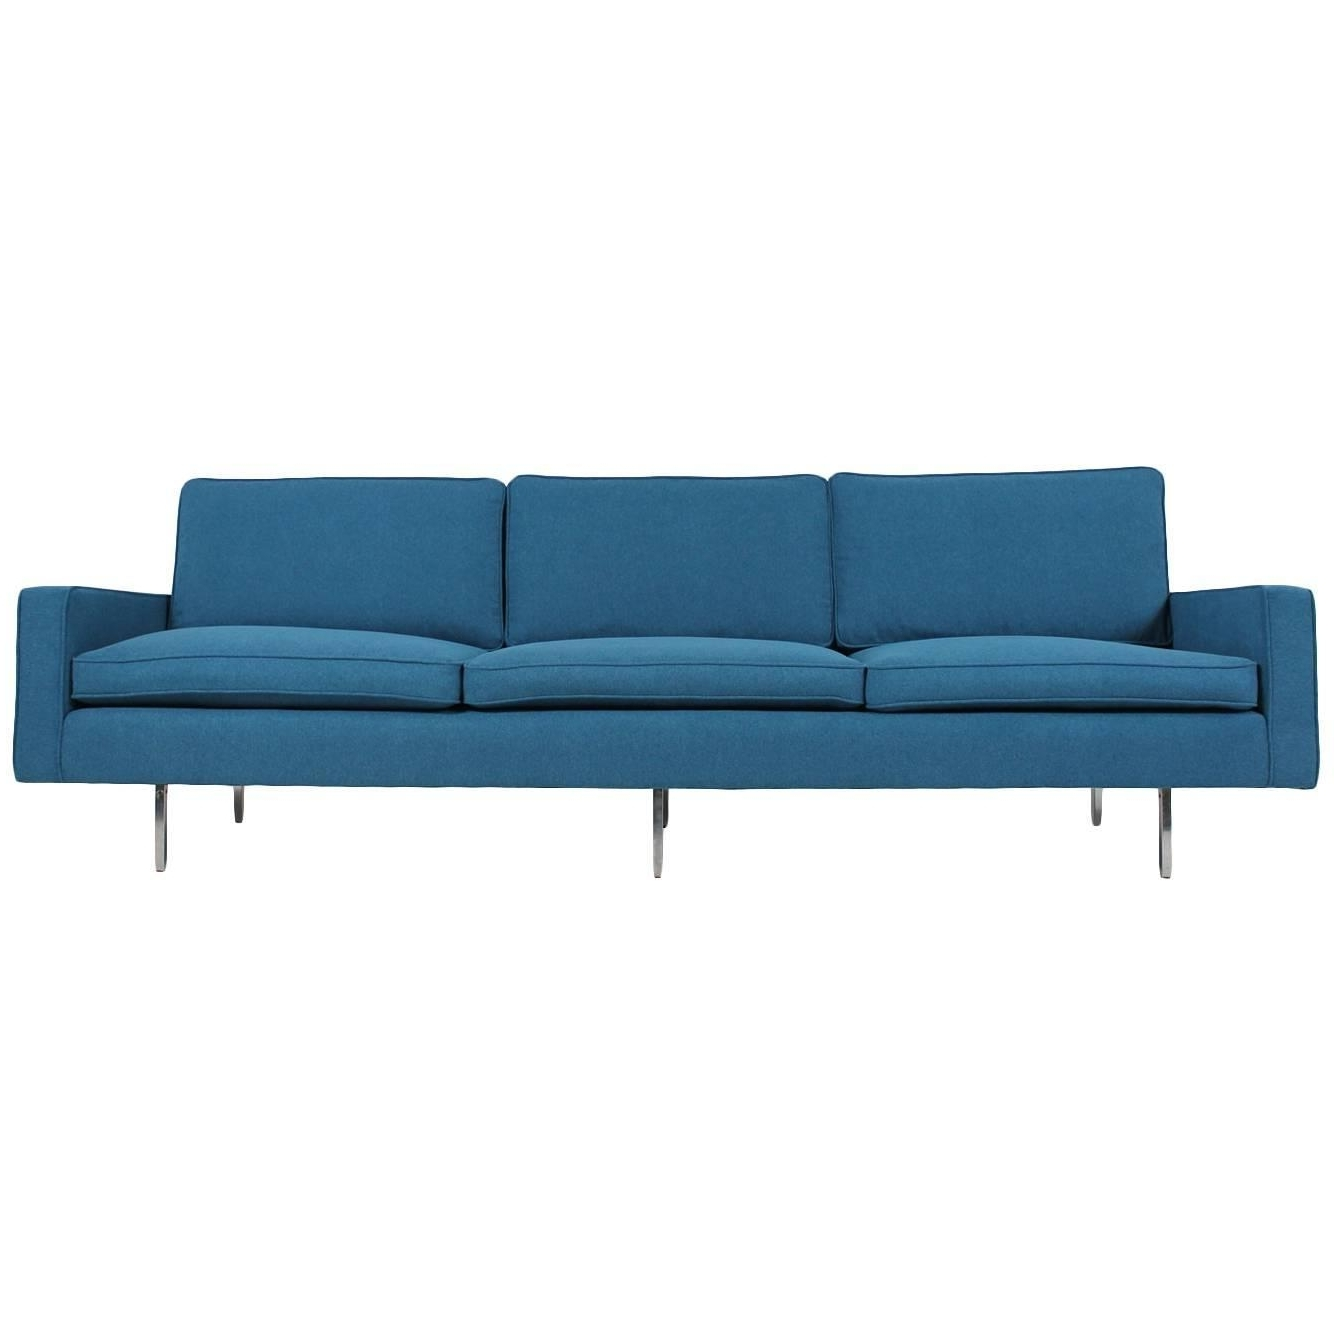 Widely Used Florence Knoll Sofas – 61 For Sale At 1stdibs Inside Florence Knoll Wood Legs Sofas (View 2 of 20)